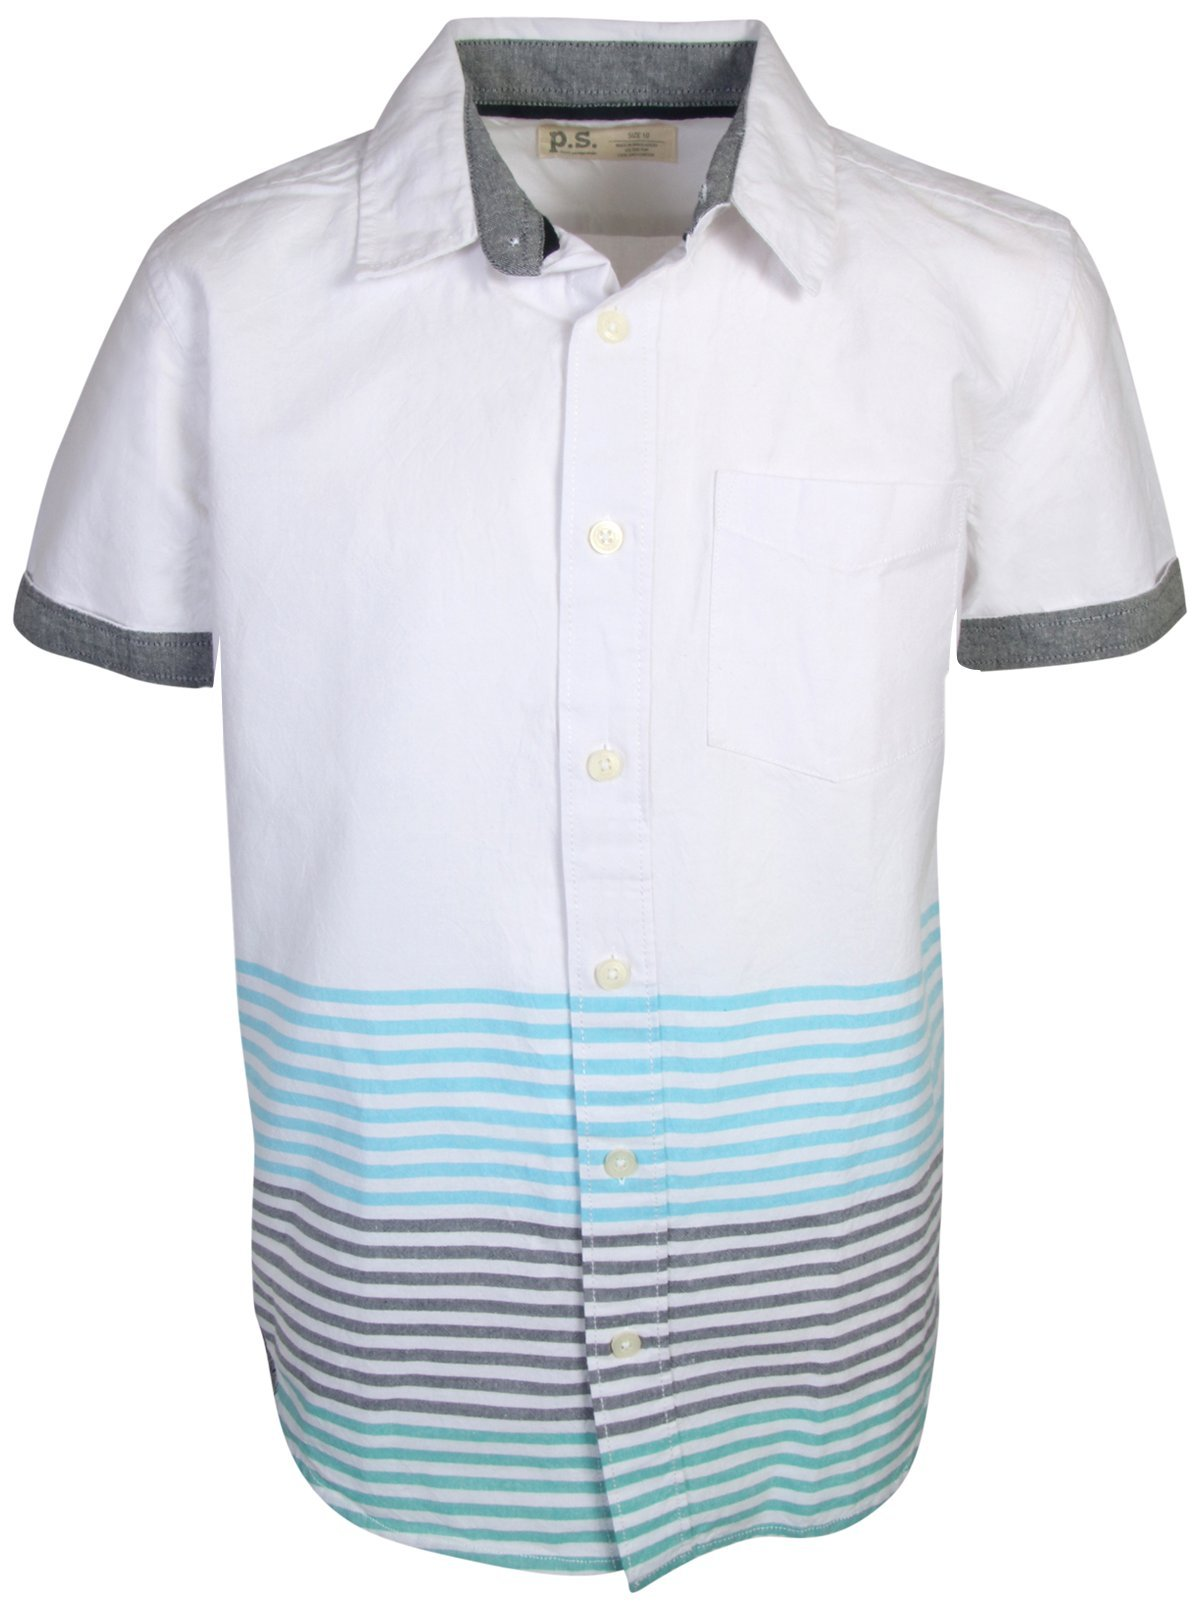 p.s. from aeropostale Boys Short Sleeve Button Down Woven Shirt, White/Blue Stripes, Size 10''